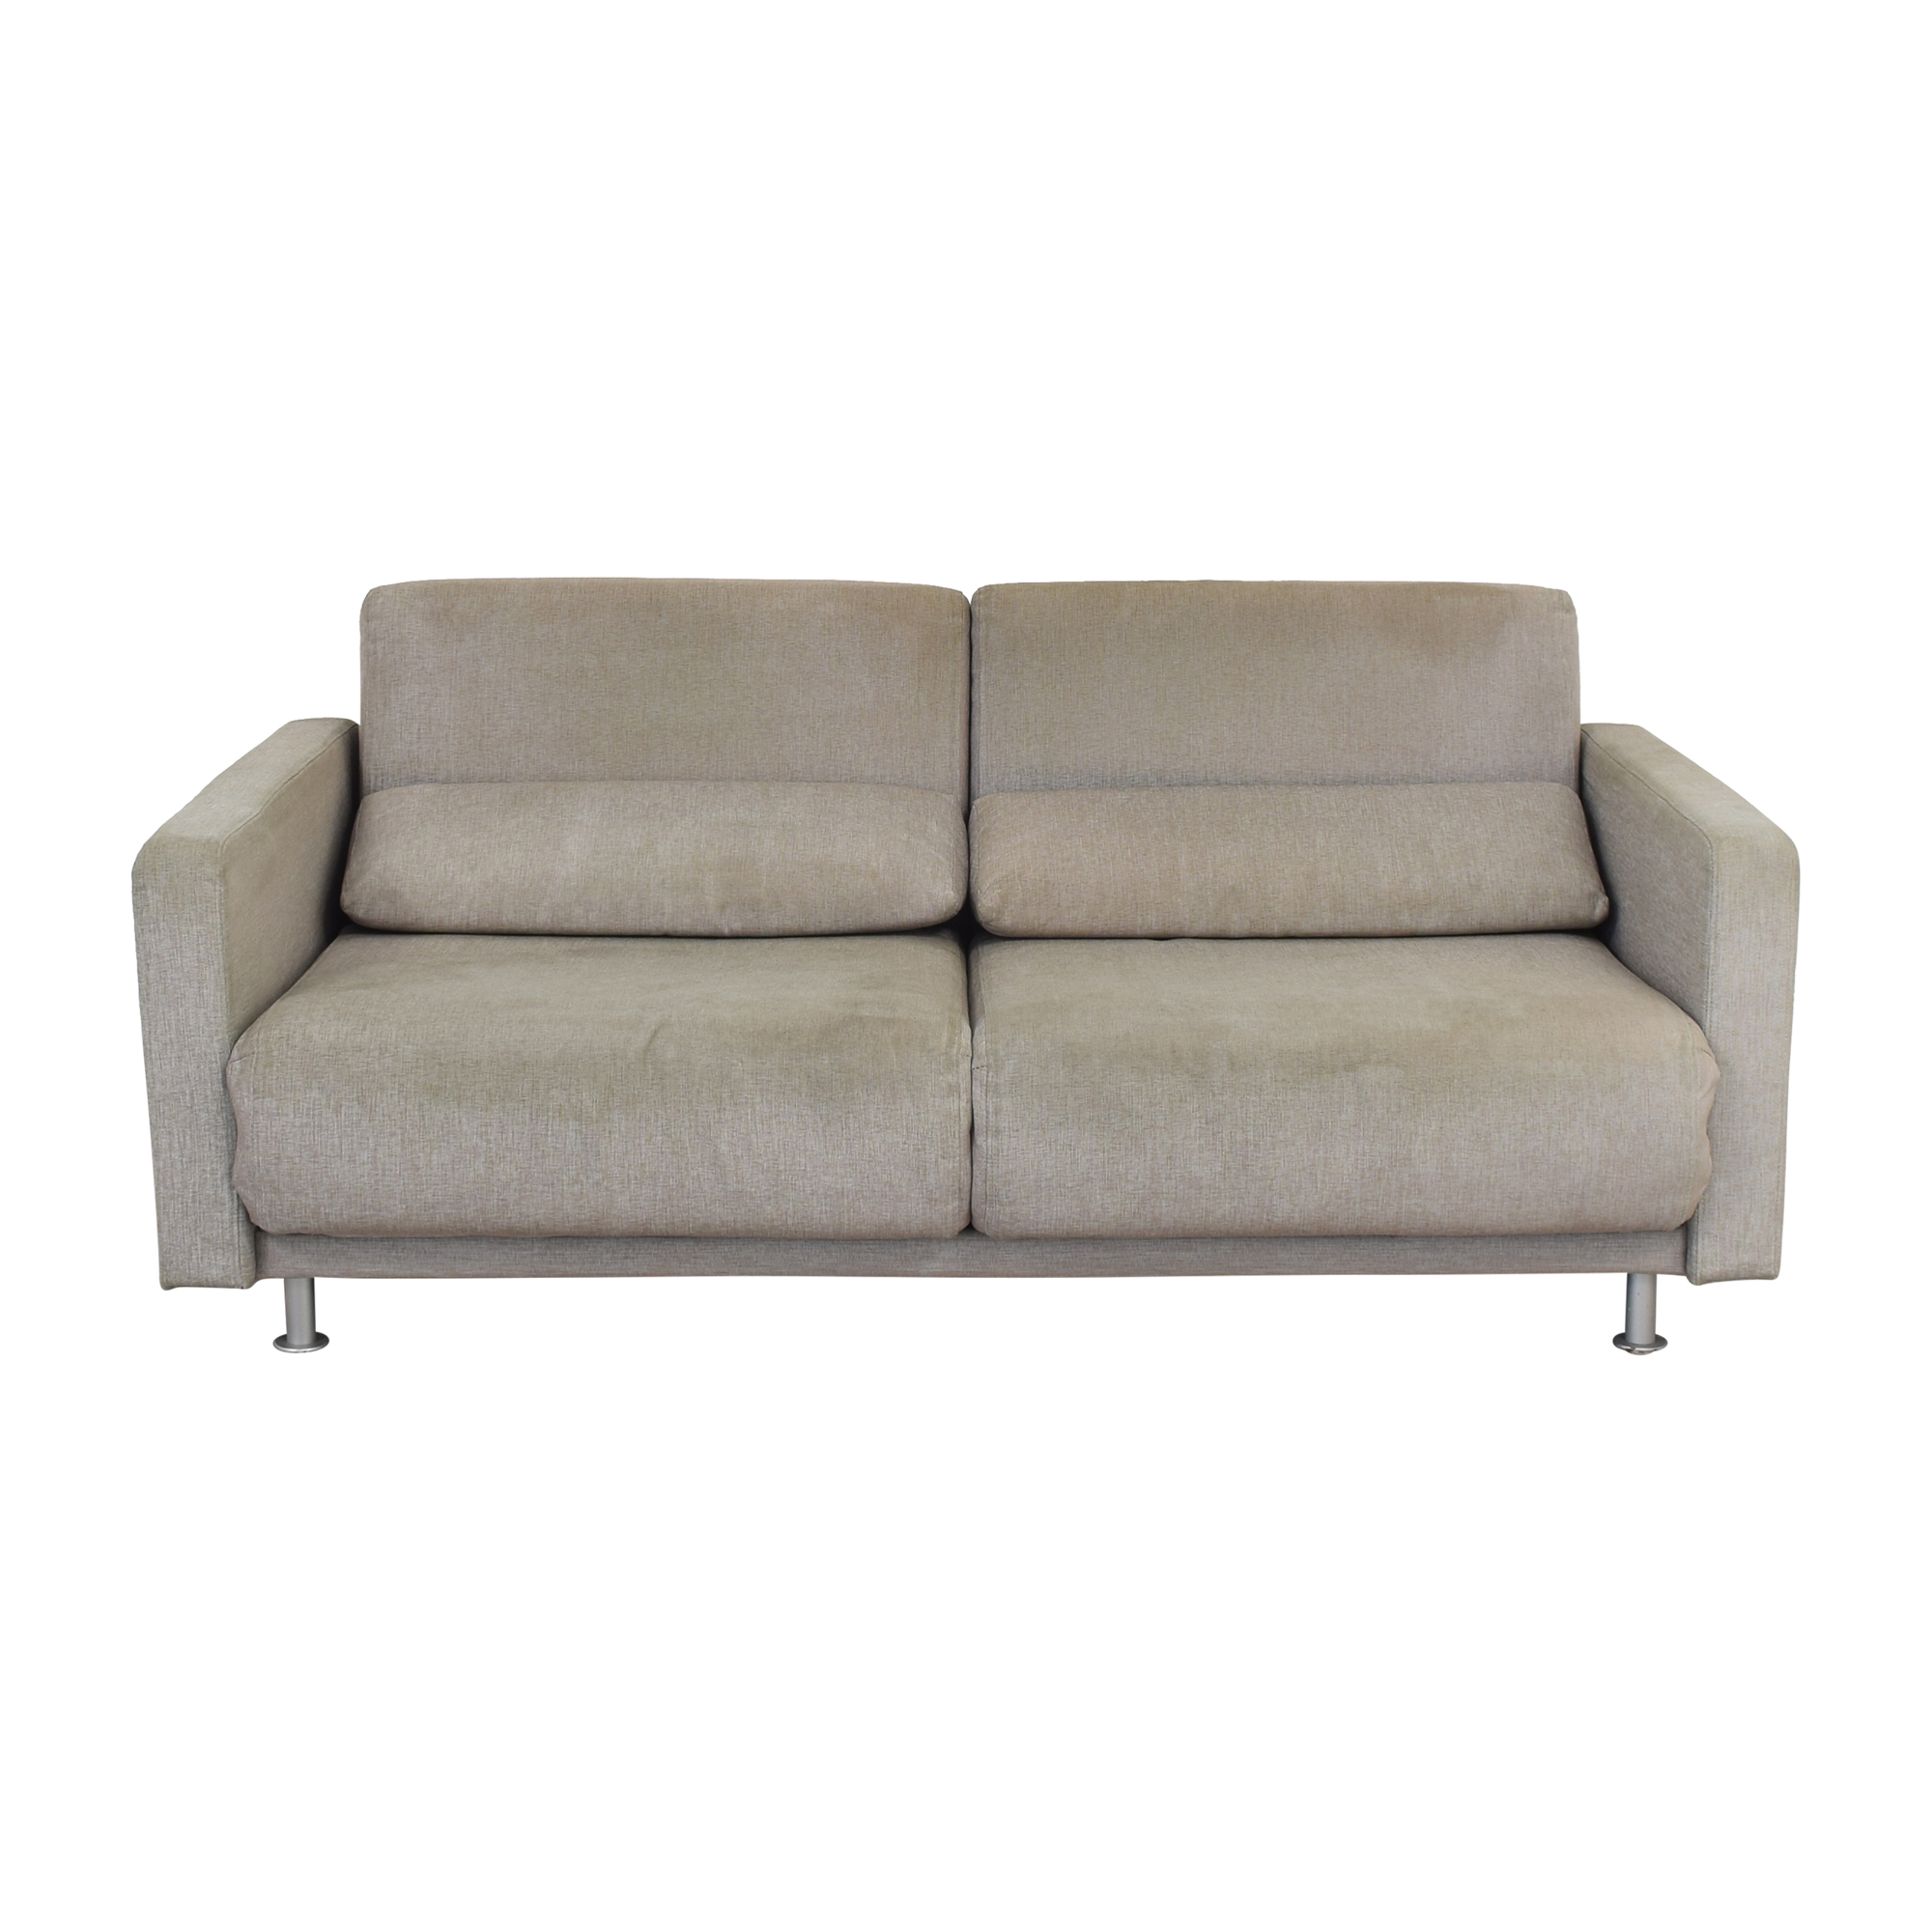 BoConcept Melo Grey Sofa Queen Bed / Sofa Beds